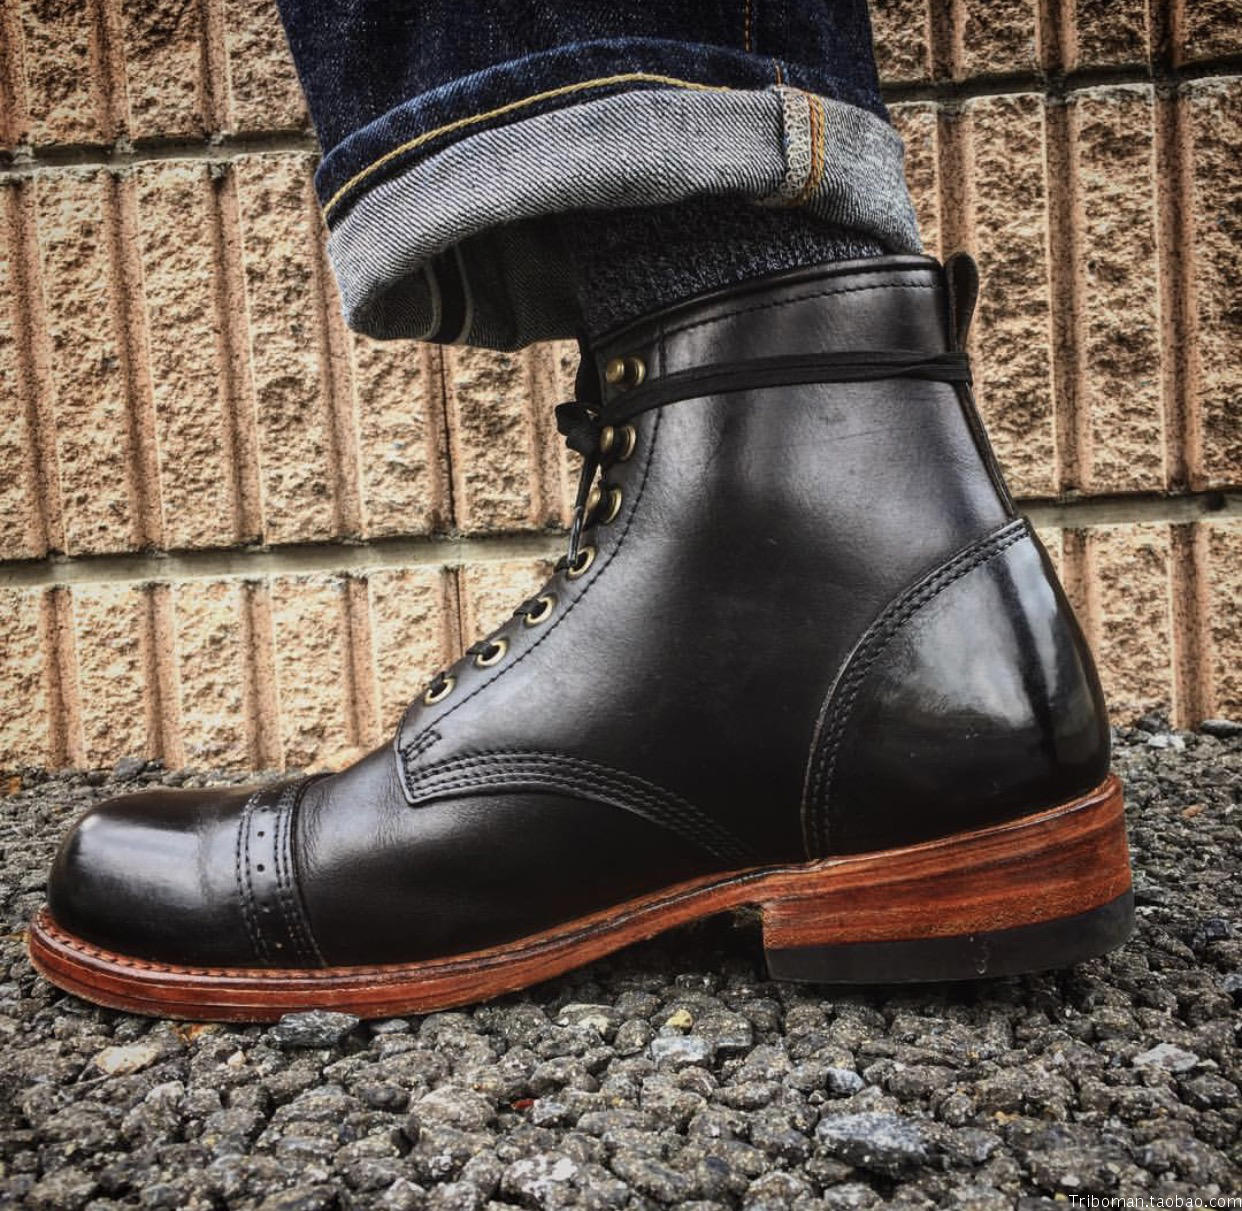 5519686cb65 Julian boots for RRL - - - black leather reinforced leather version with an  upgraded version of Beckham